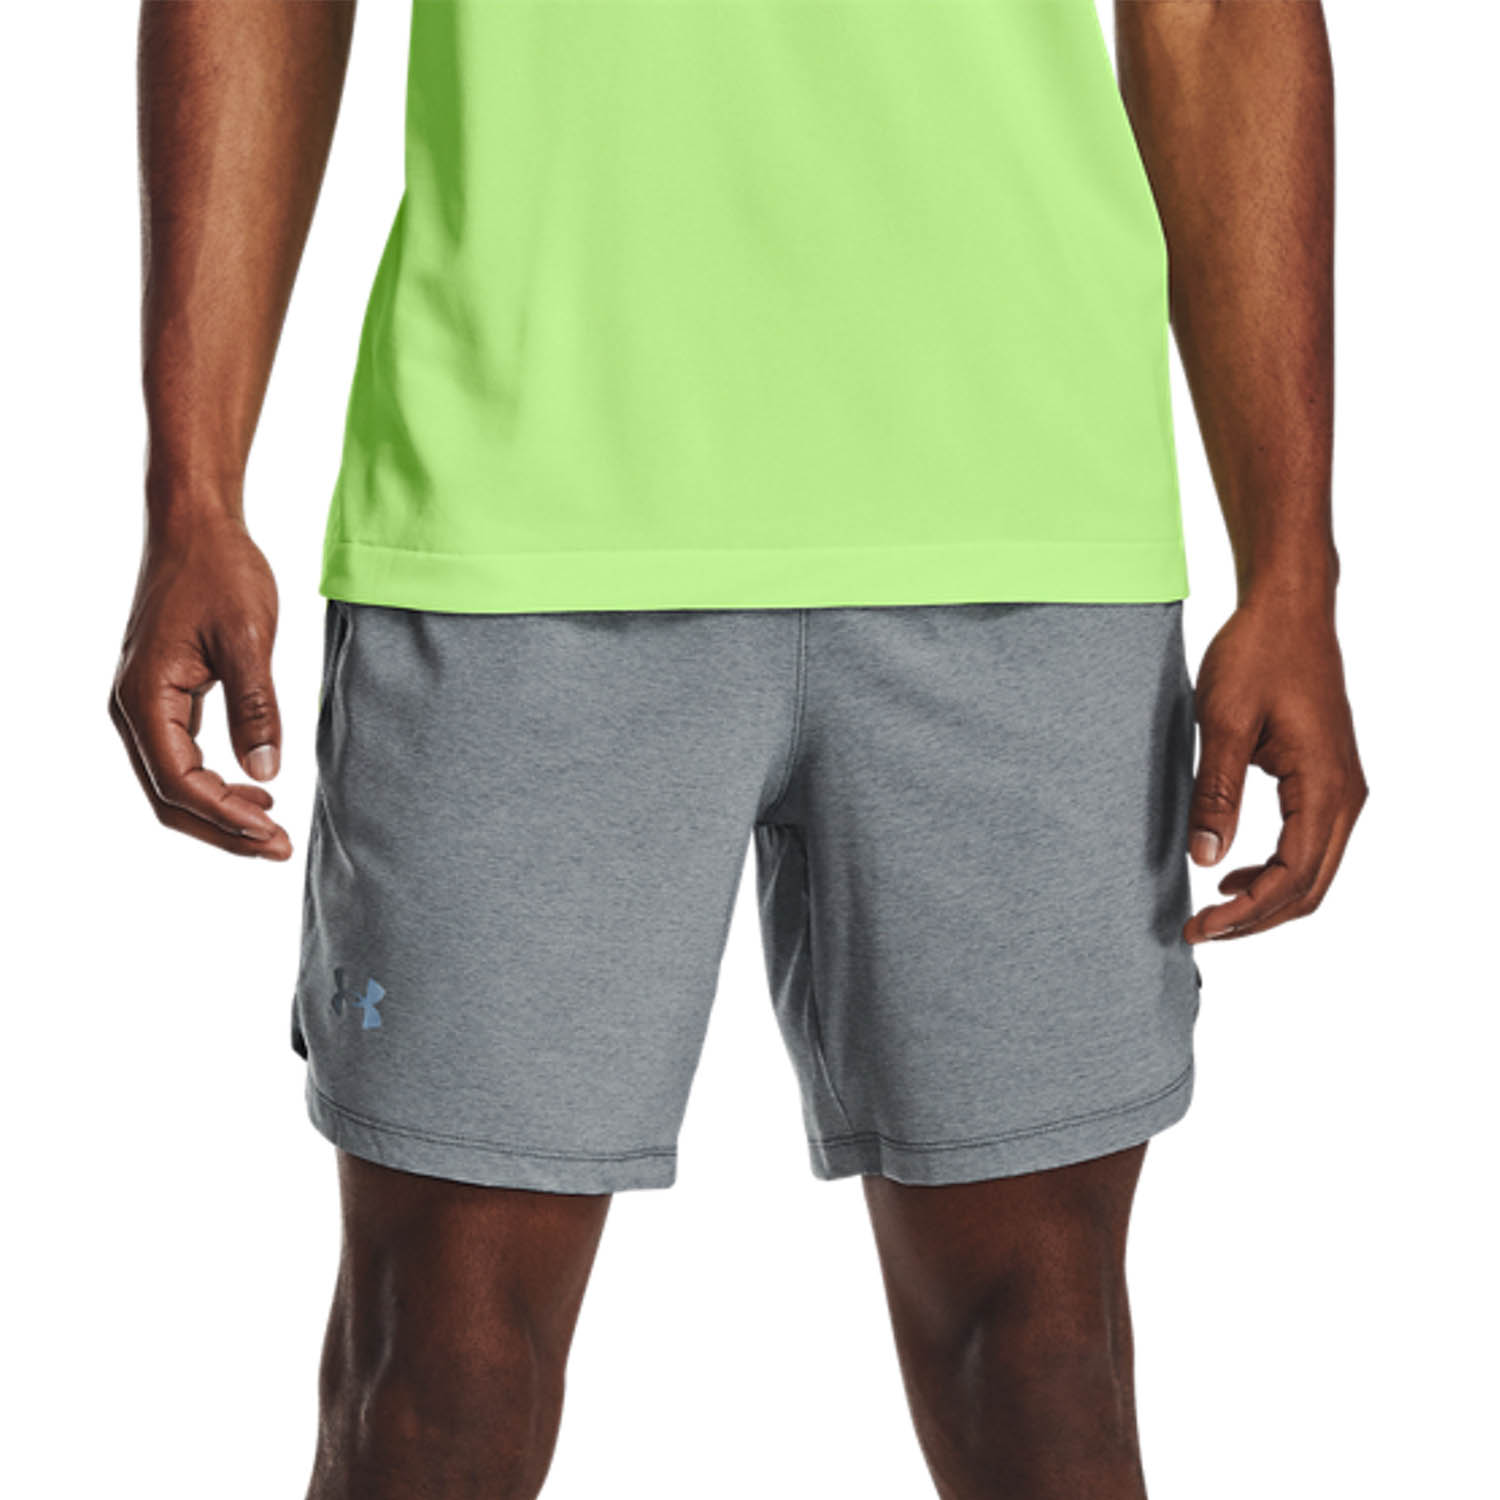 Under Armour Launch 7in Shorts - Pitch Gray/Full Heather/Hyper Green/Reflective